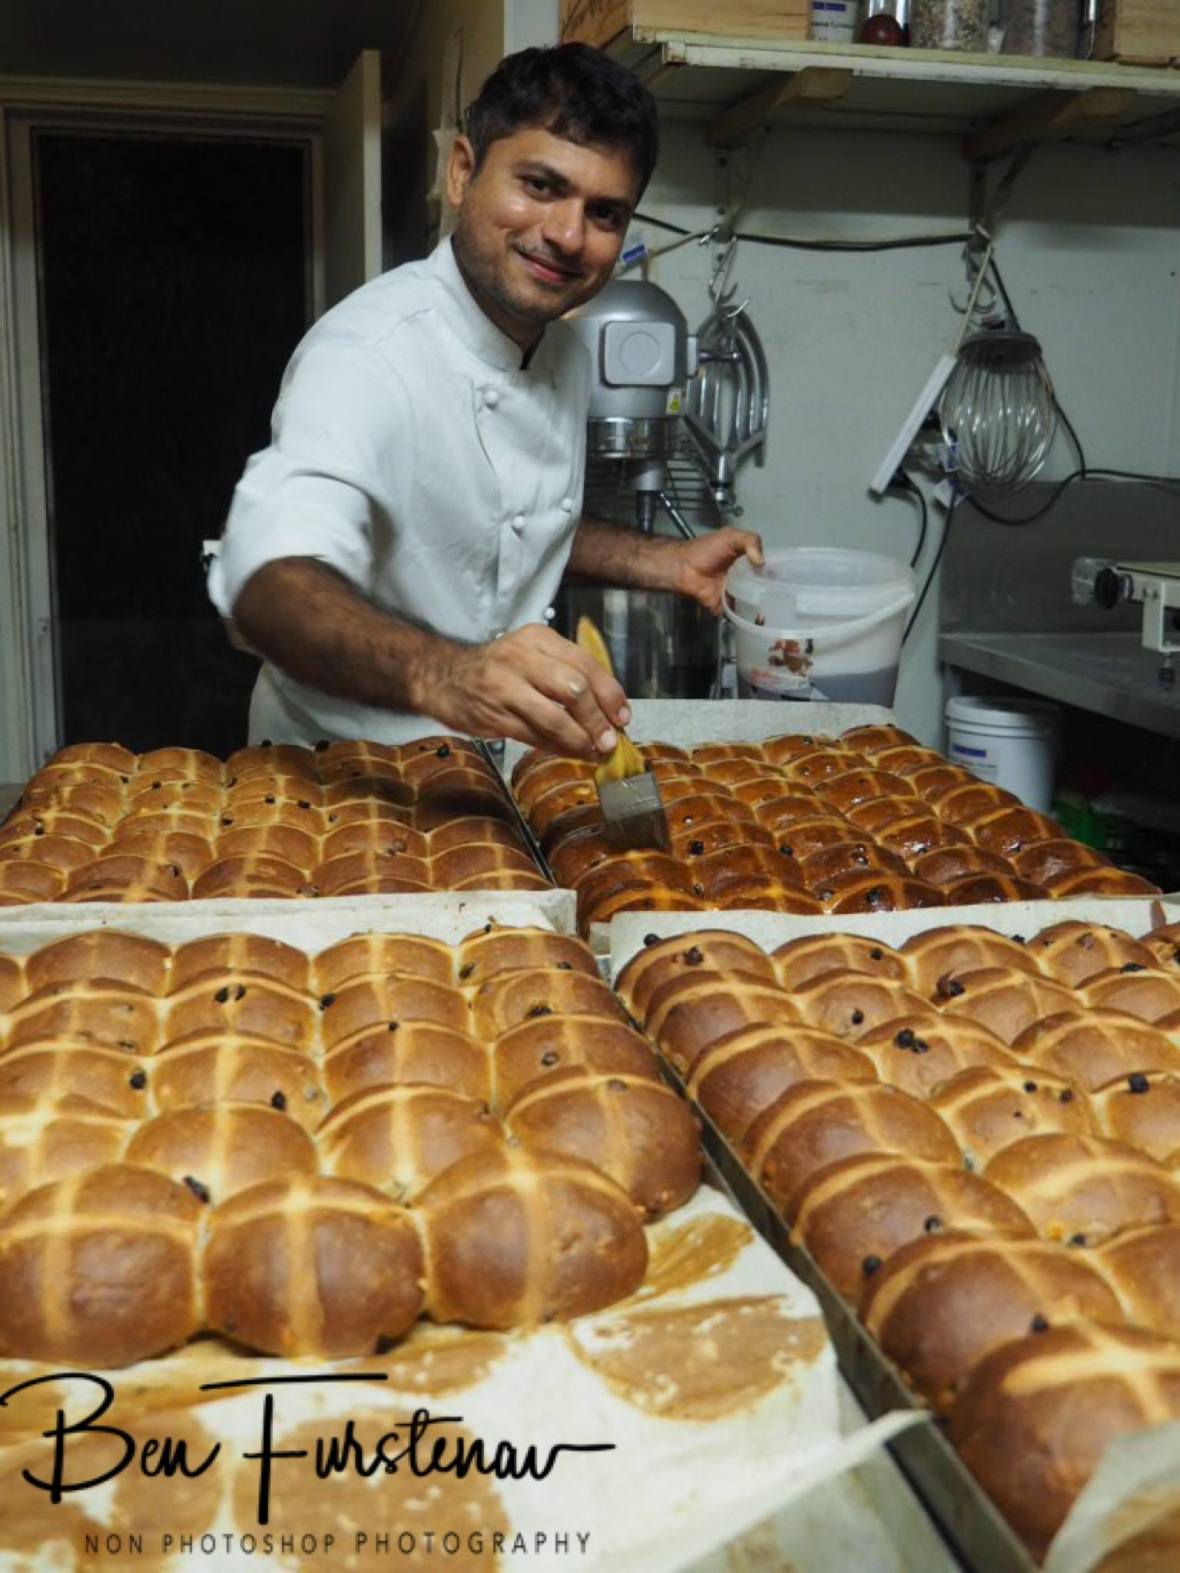 Shailesh glazing hot cross buns, Newrybar, New South Wales, Australia